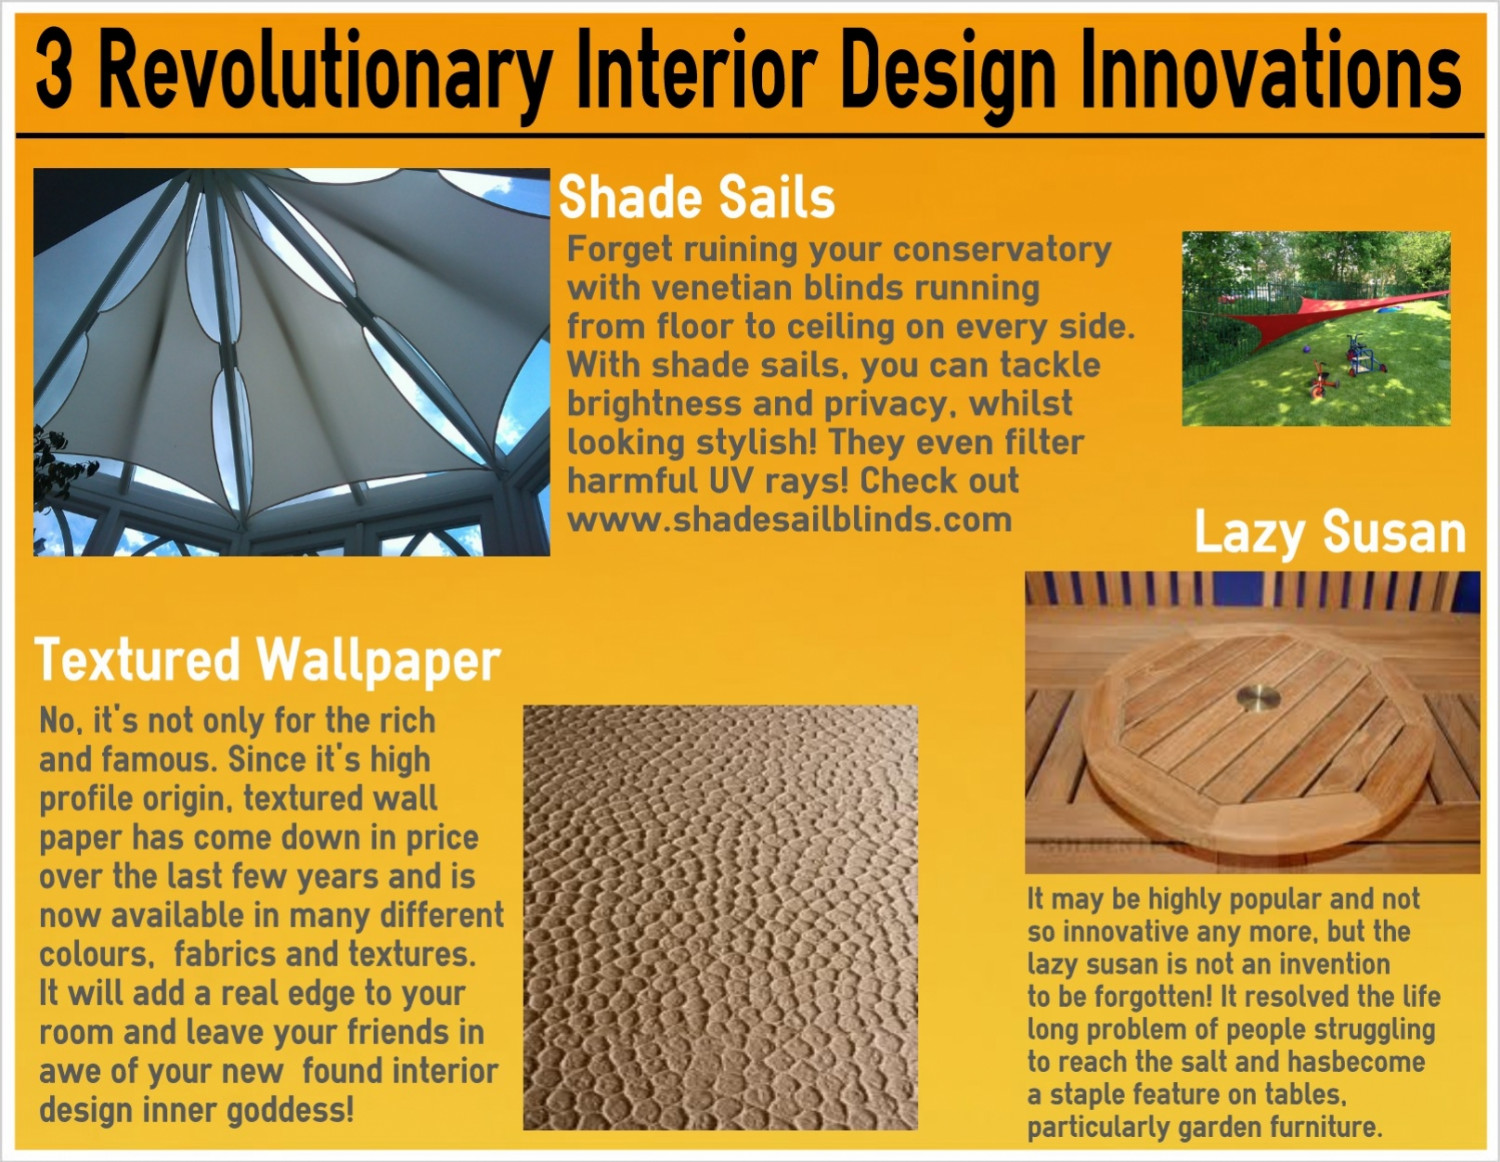 Revolutionary Interior Design Products Infographic